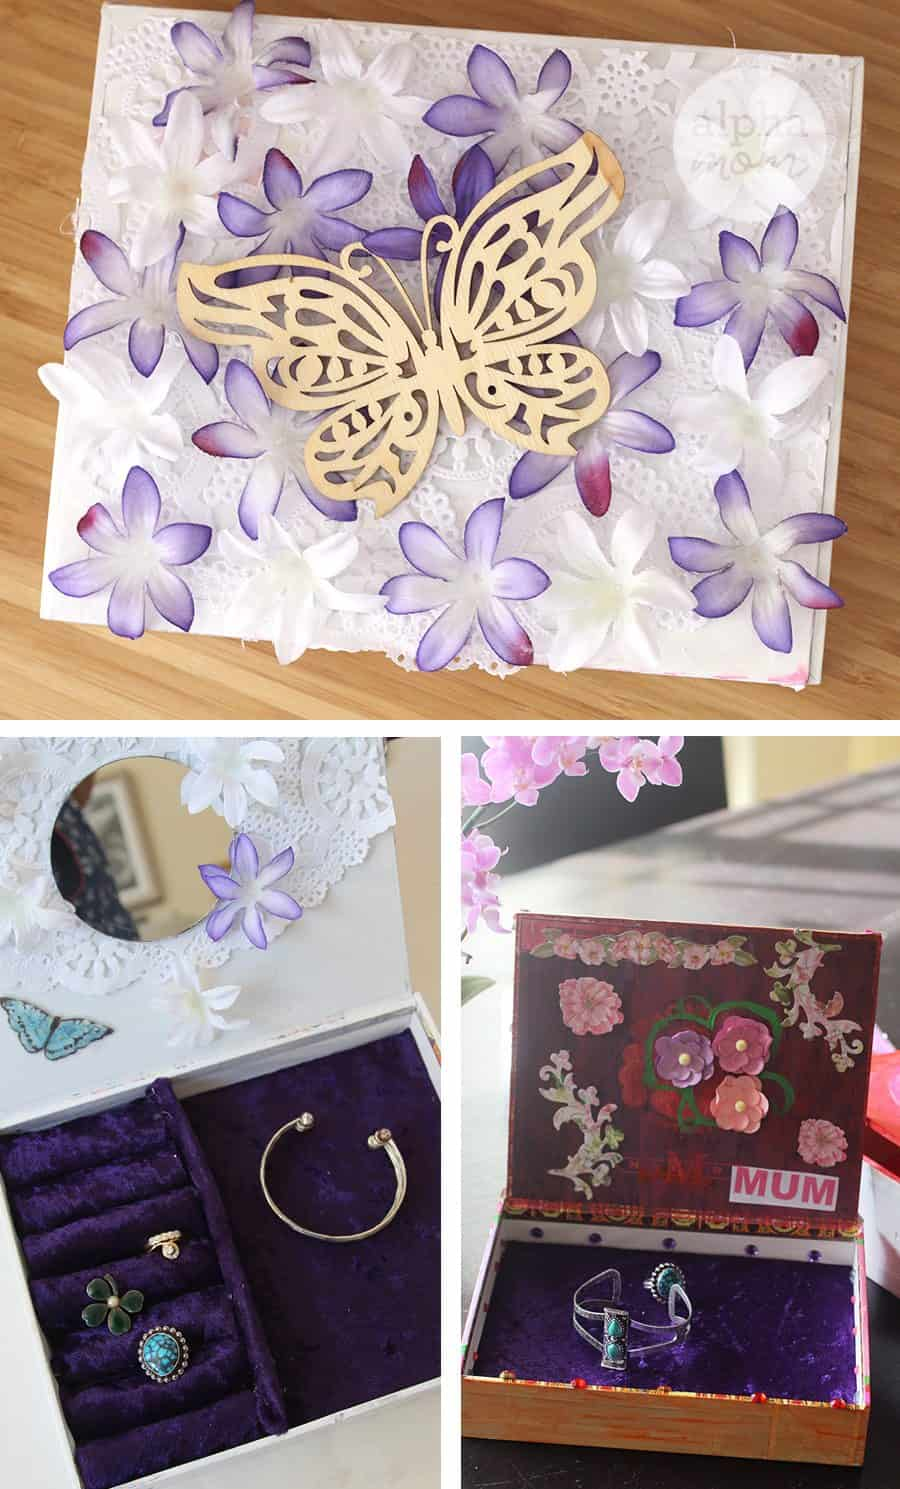 Jewelry Box DIY for Mother's Day (decorating butterfly) by Brenda Ponnay for Alphamom.com